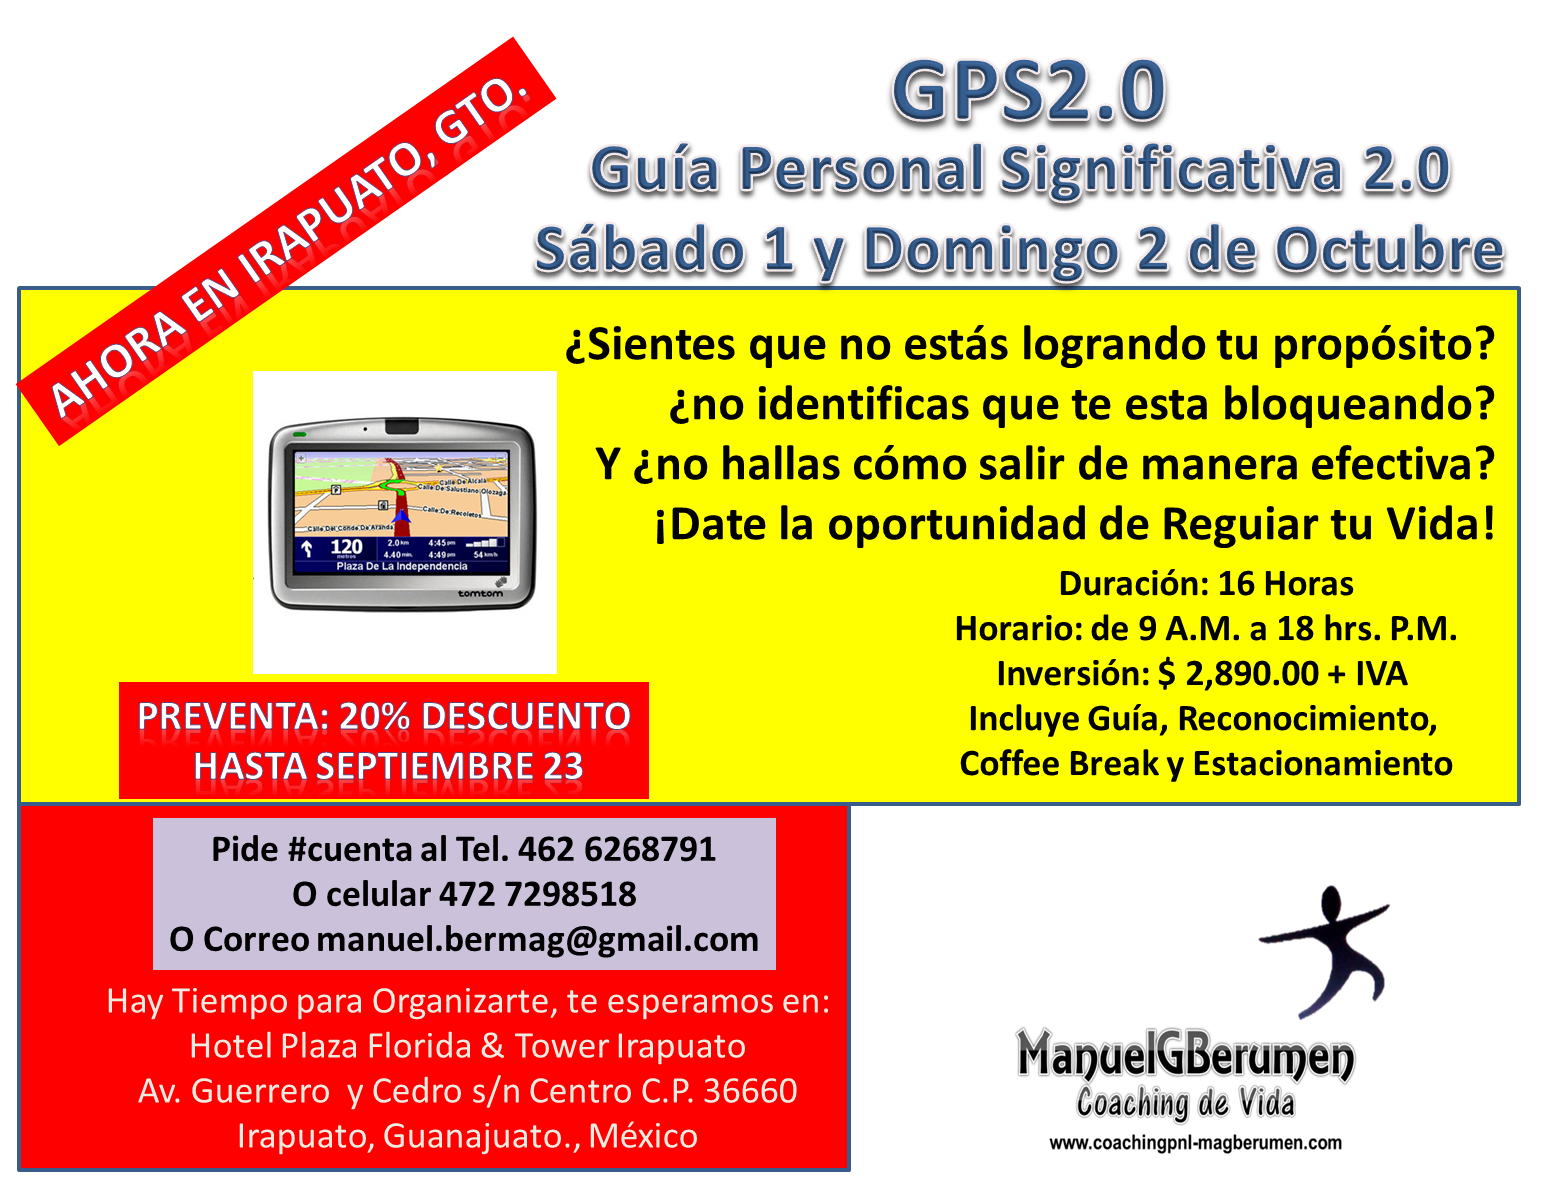 blog de magberumen coaching pnl y consultor a empresarial gps2 0 gu a personal significativa 2 0. Black Bedroom Furniture Sets. Home Design Ideas